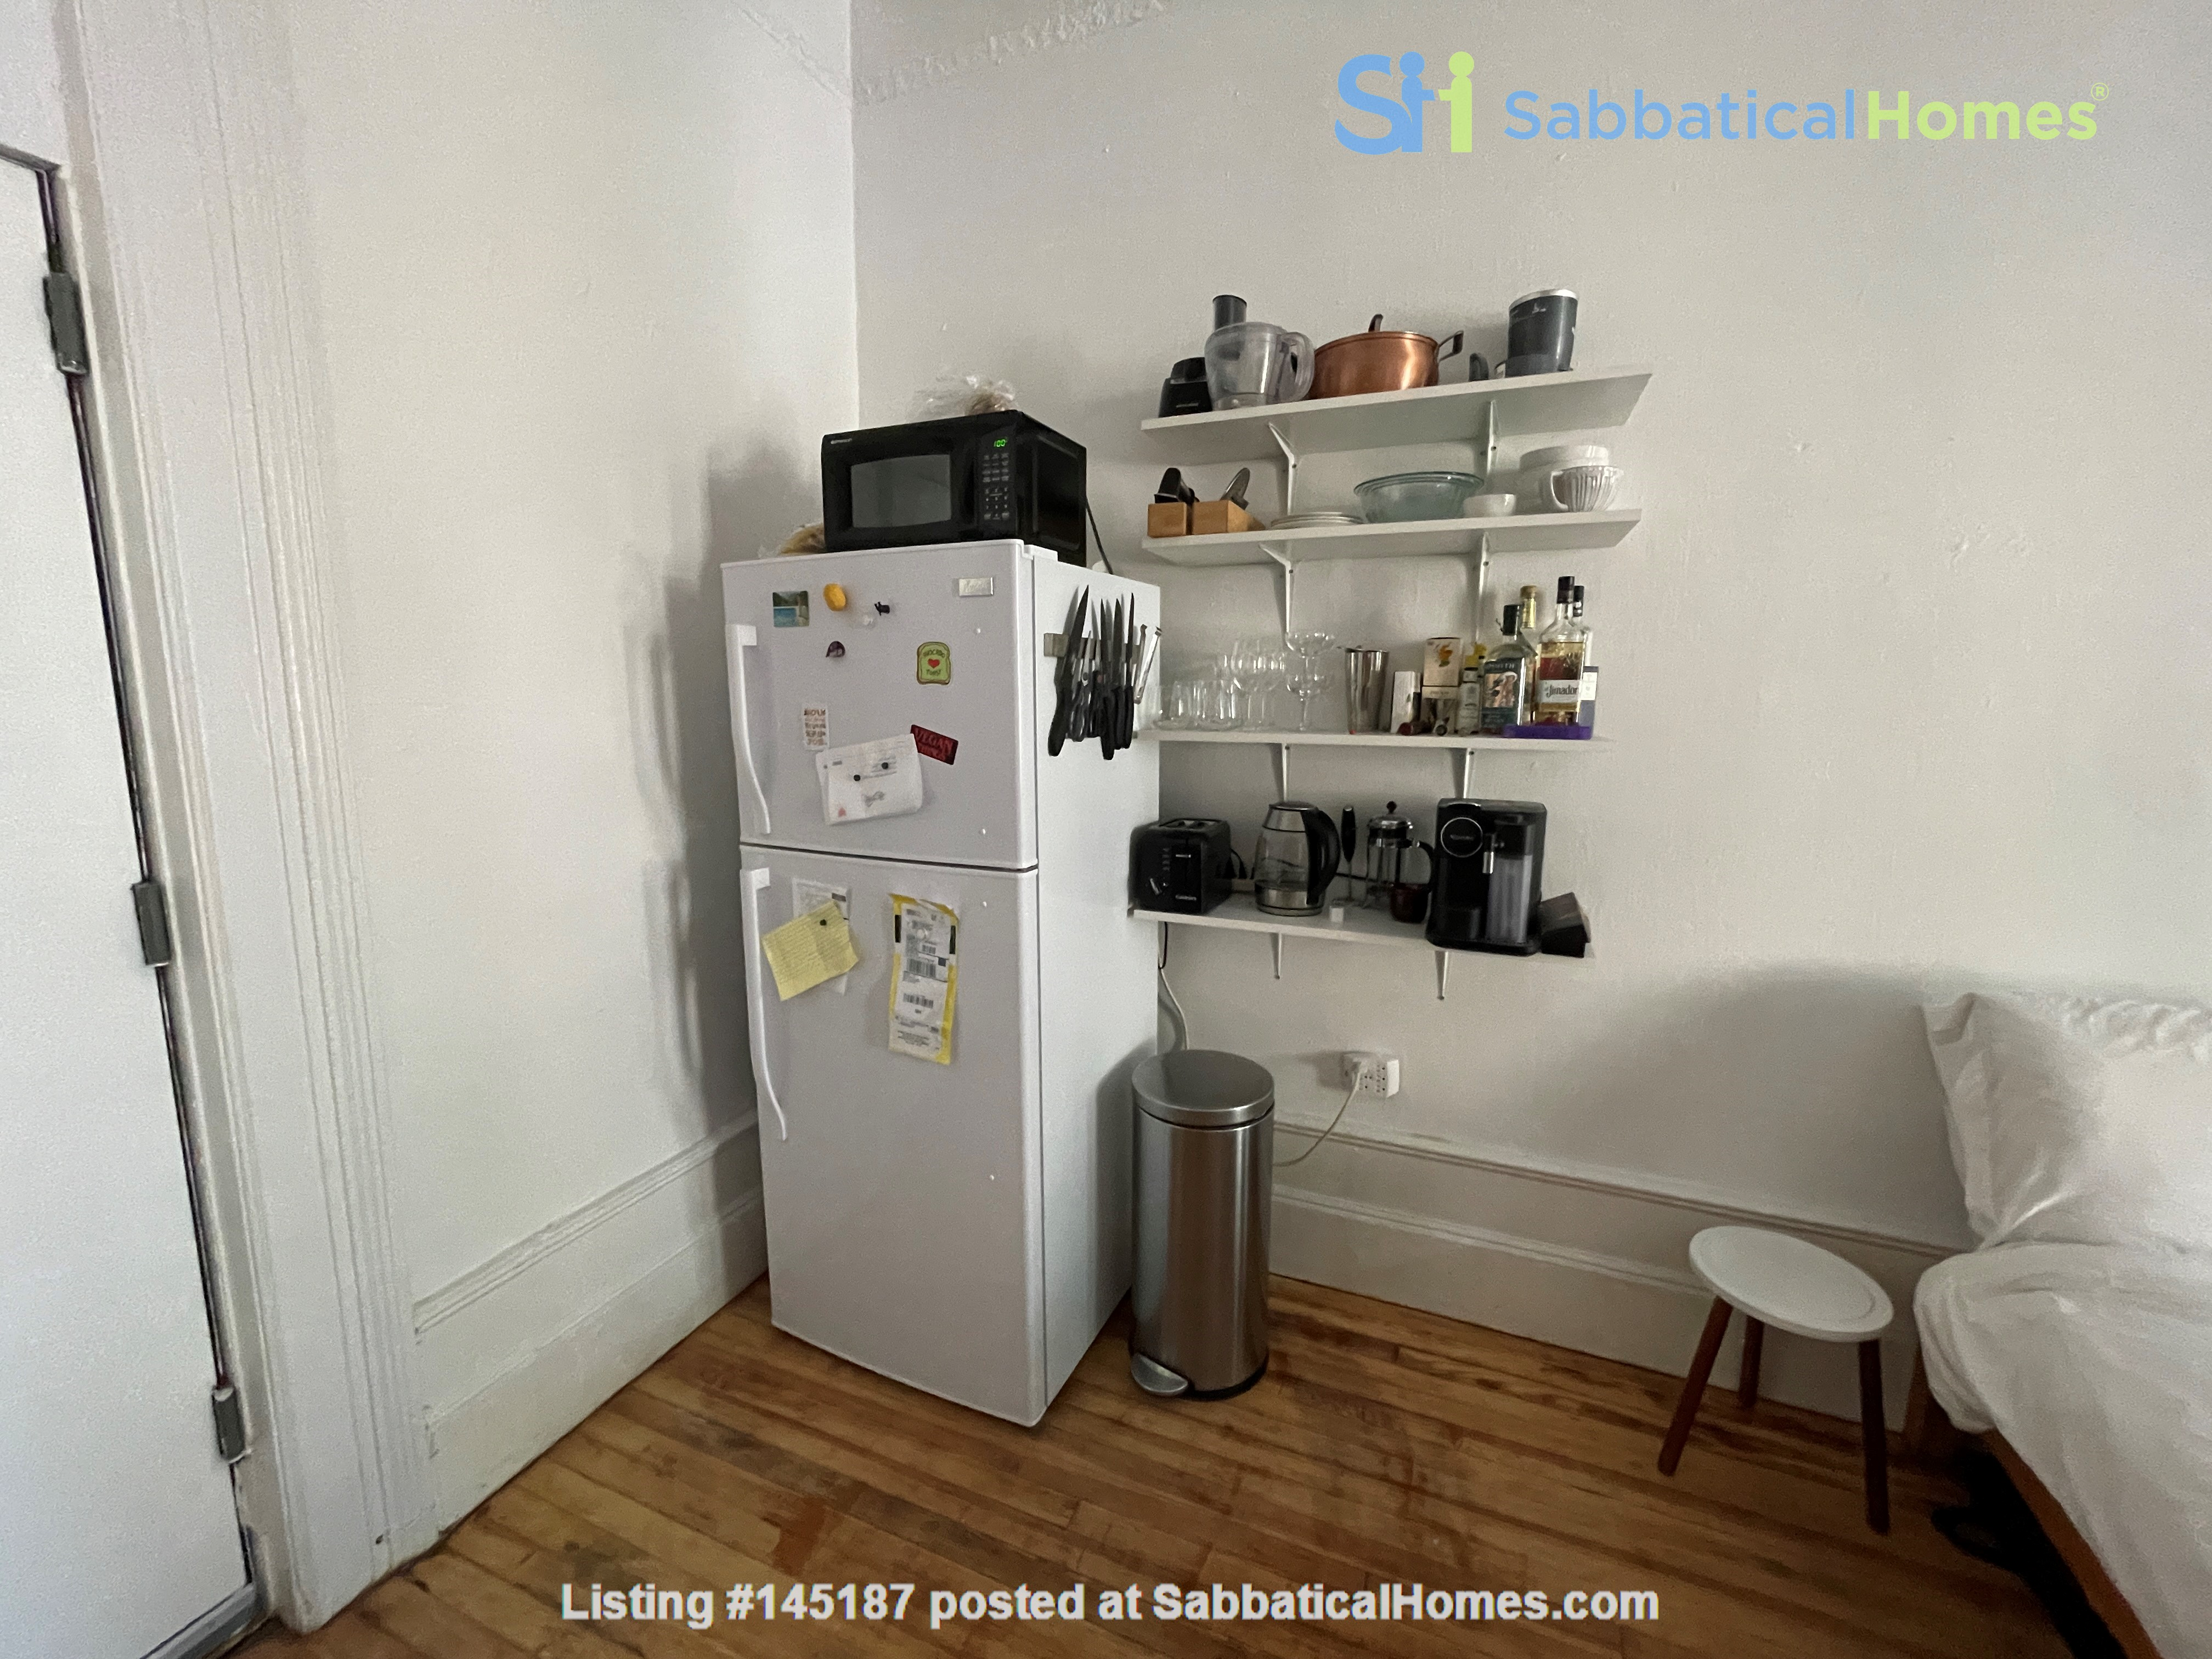 Historic South Harlem Studio with Balcony, short walk to Central Park! Home Rental in New York 6